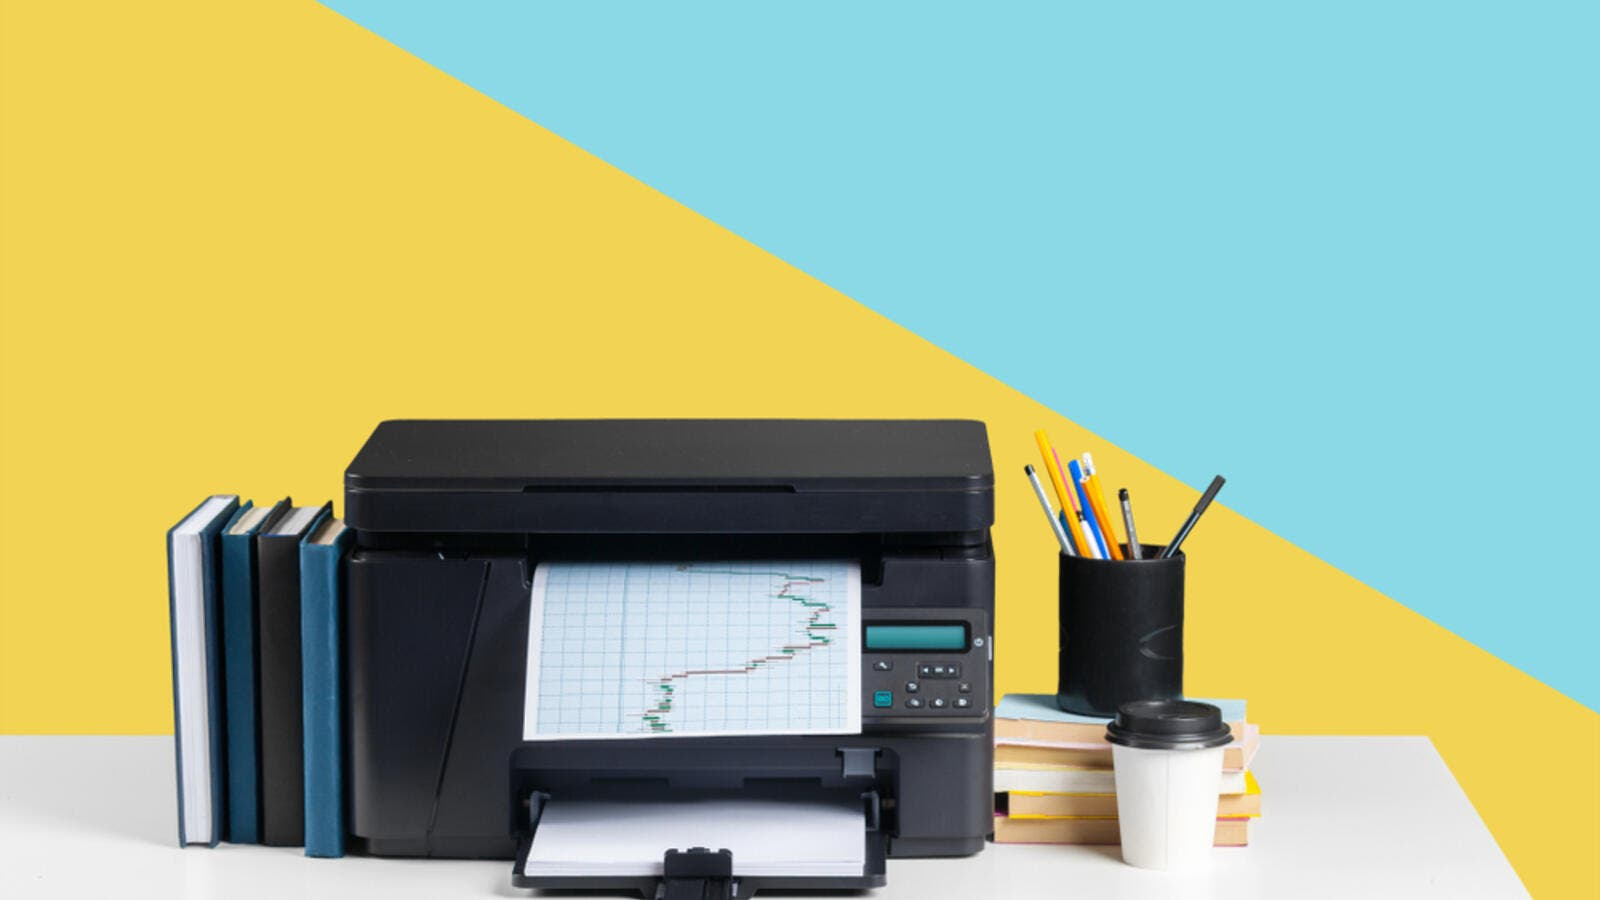 These brilliant devices can handle standard print capabilities as well as photocopying, scanning and even faxing as well.